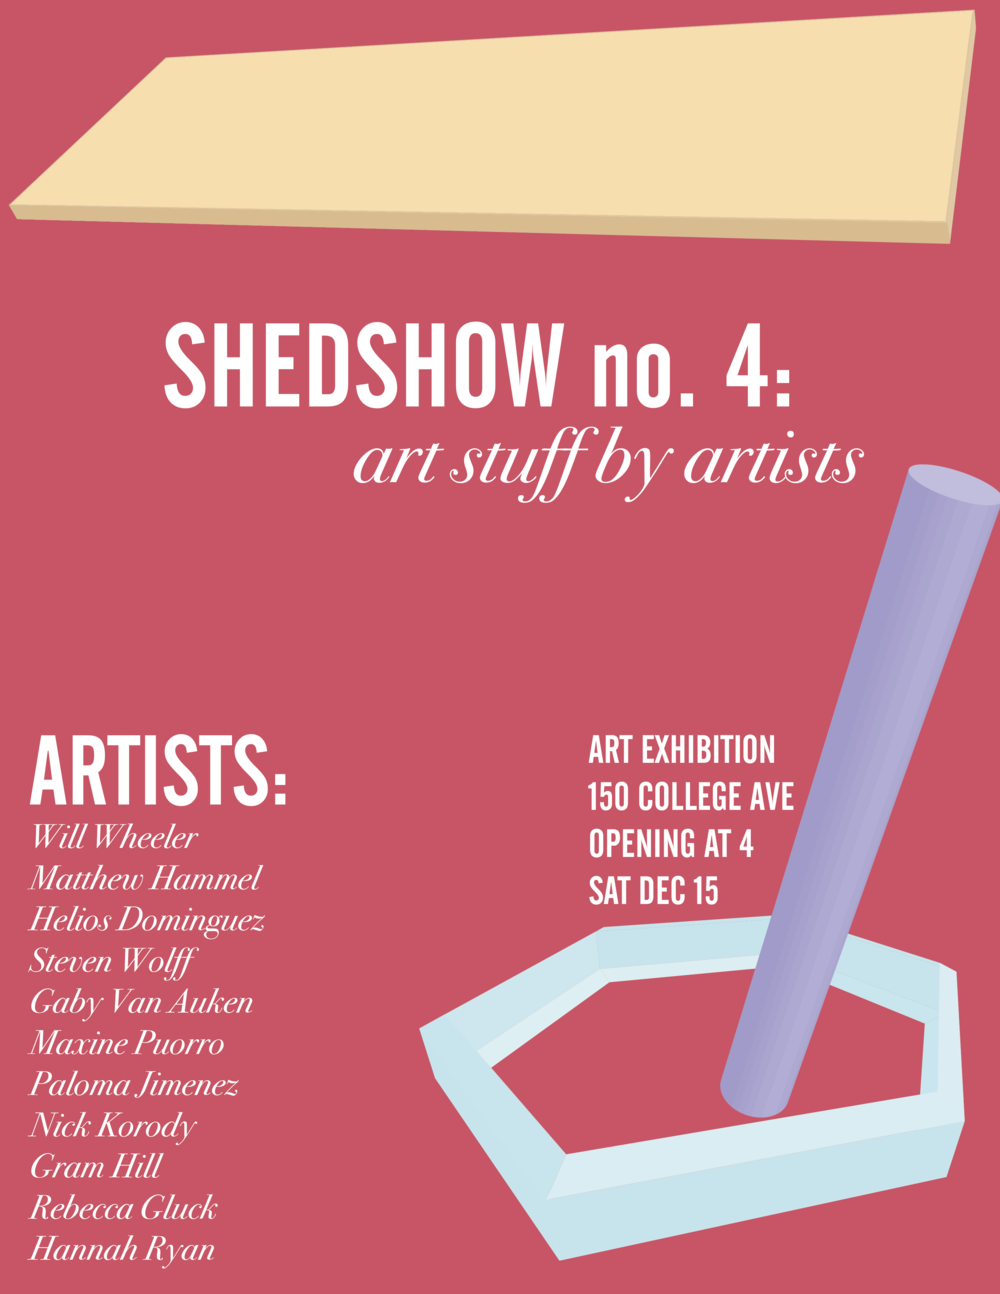 shedshow4poster_ver1 copy.png